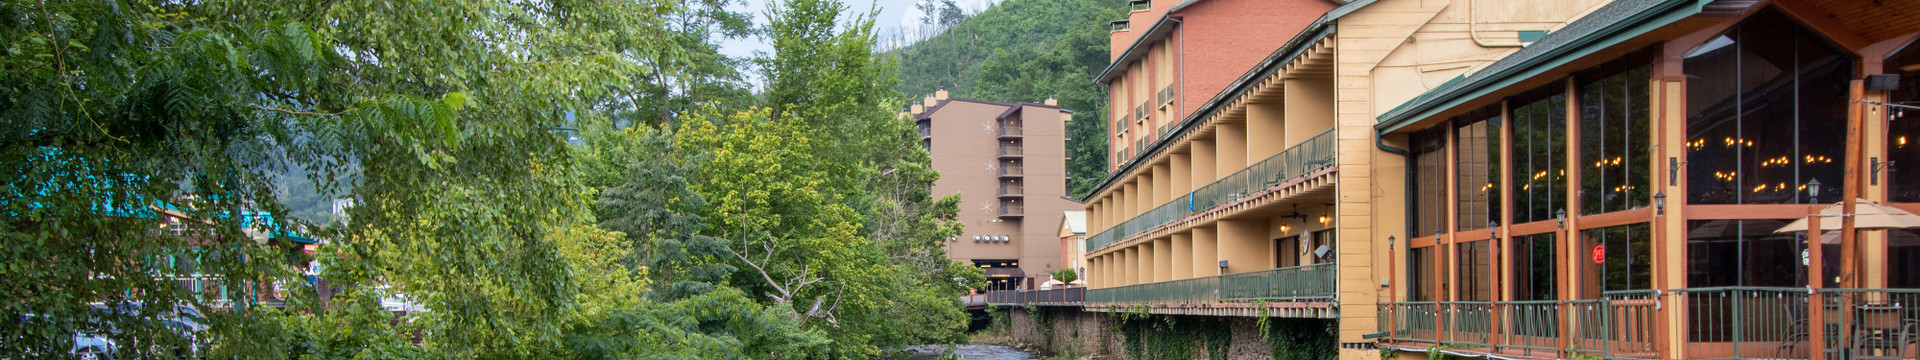 Does River Terrace Resort & Convention Center offer free Wi-Fi - River Terrace Resort & Convention Center